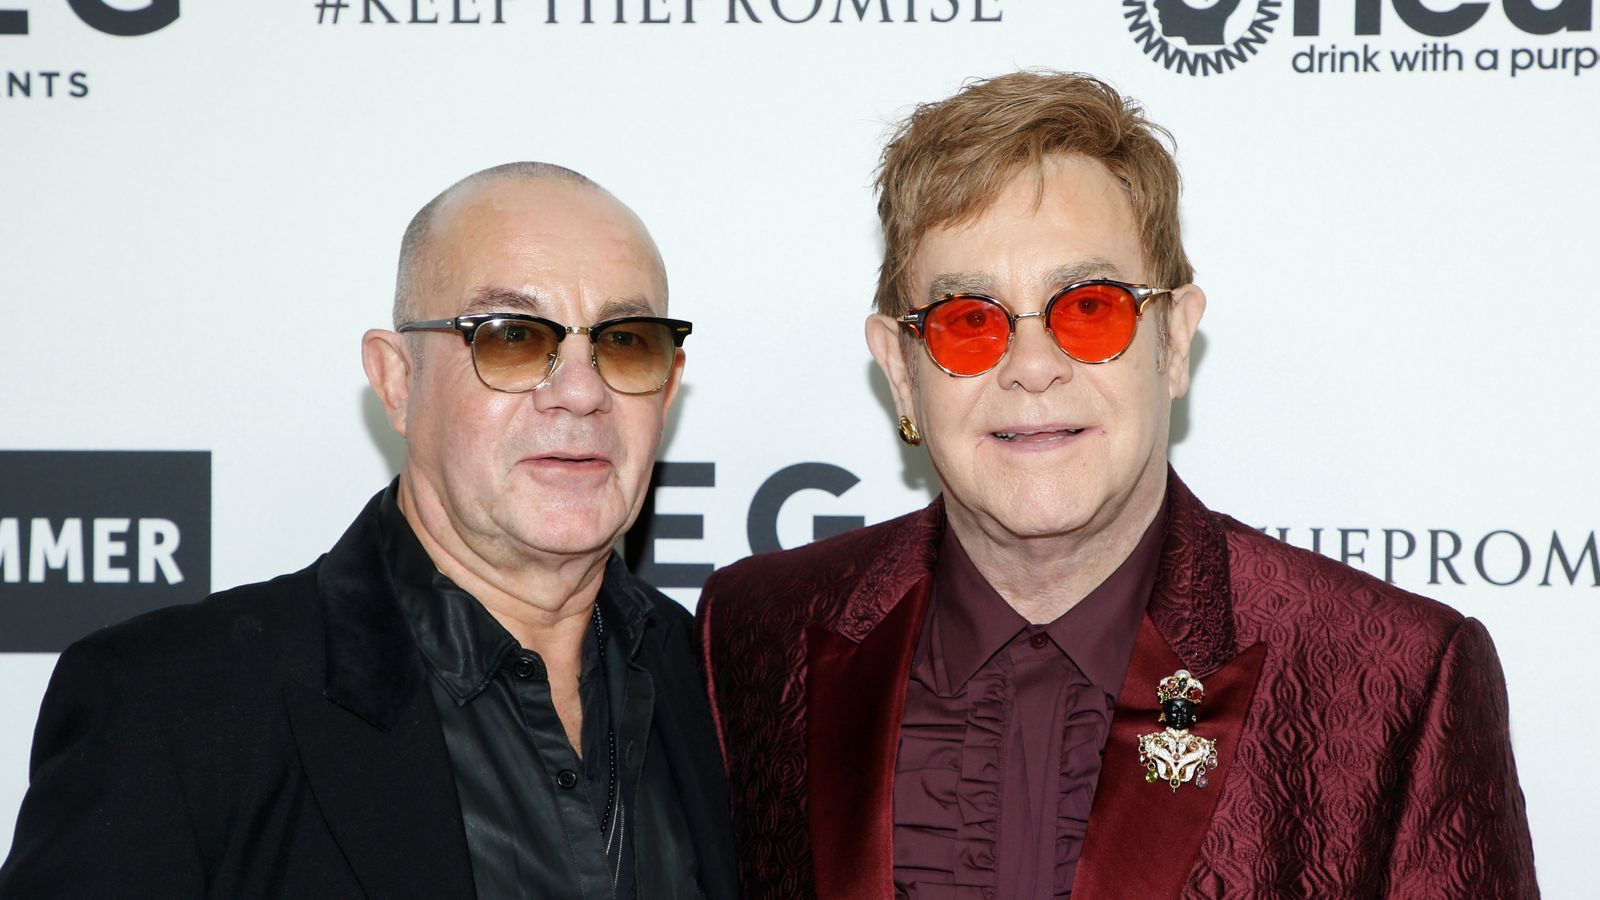 sir elton john Watch video after almost a half of century of performing for packed audiences, sir elton john has announced his plans to retire from global touring.